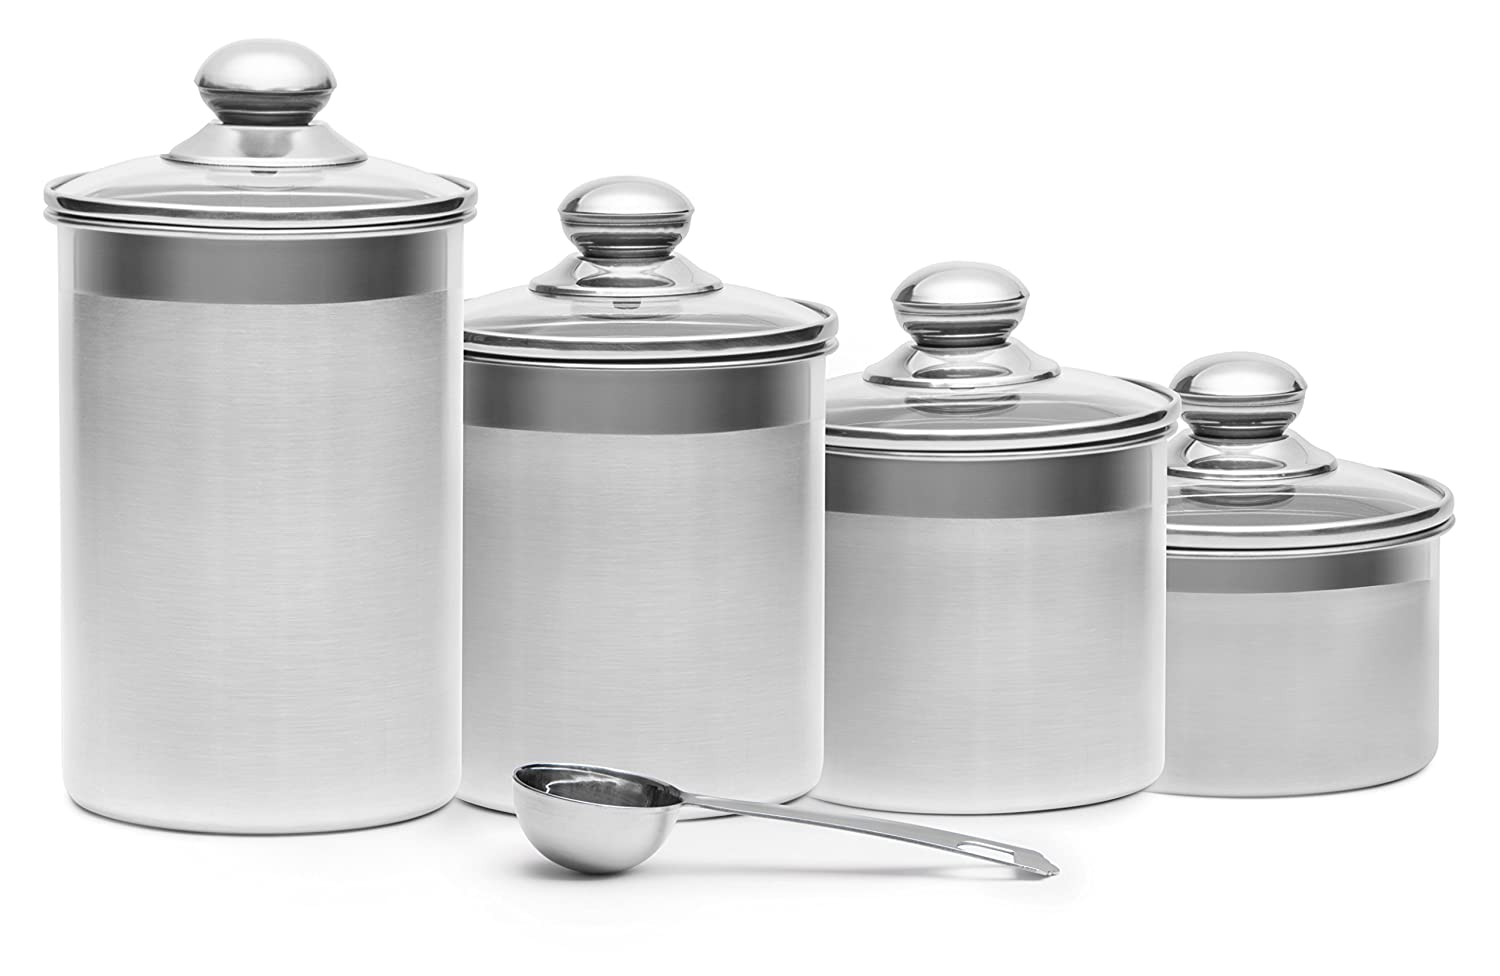 +Steel 4-Piece Stainless Steel Canister Set with Scoop and Lids